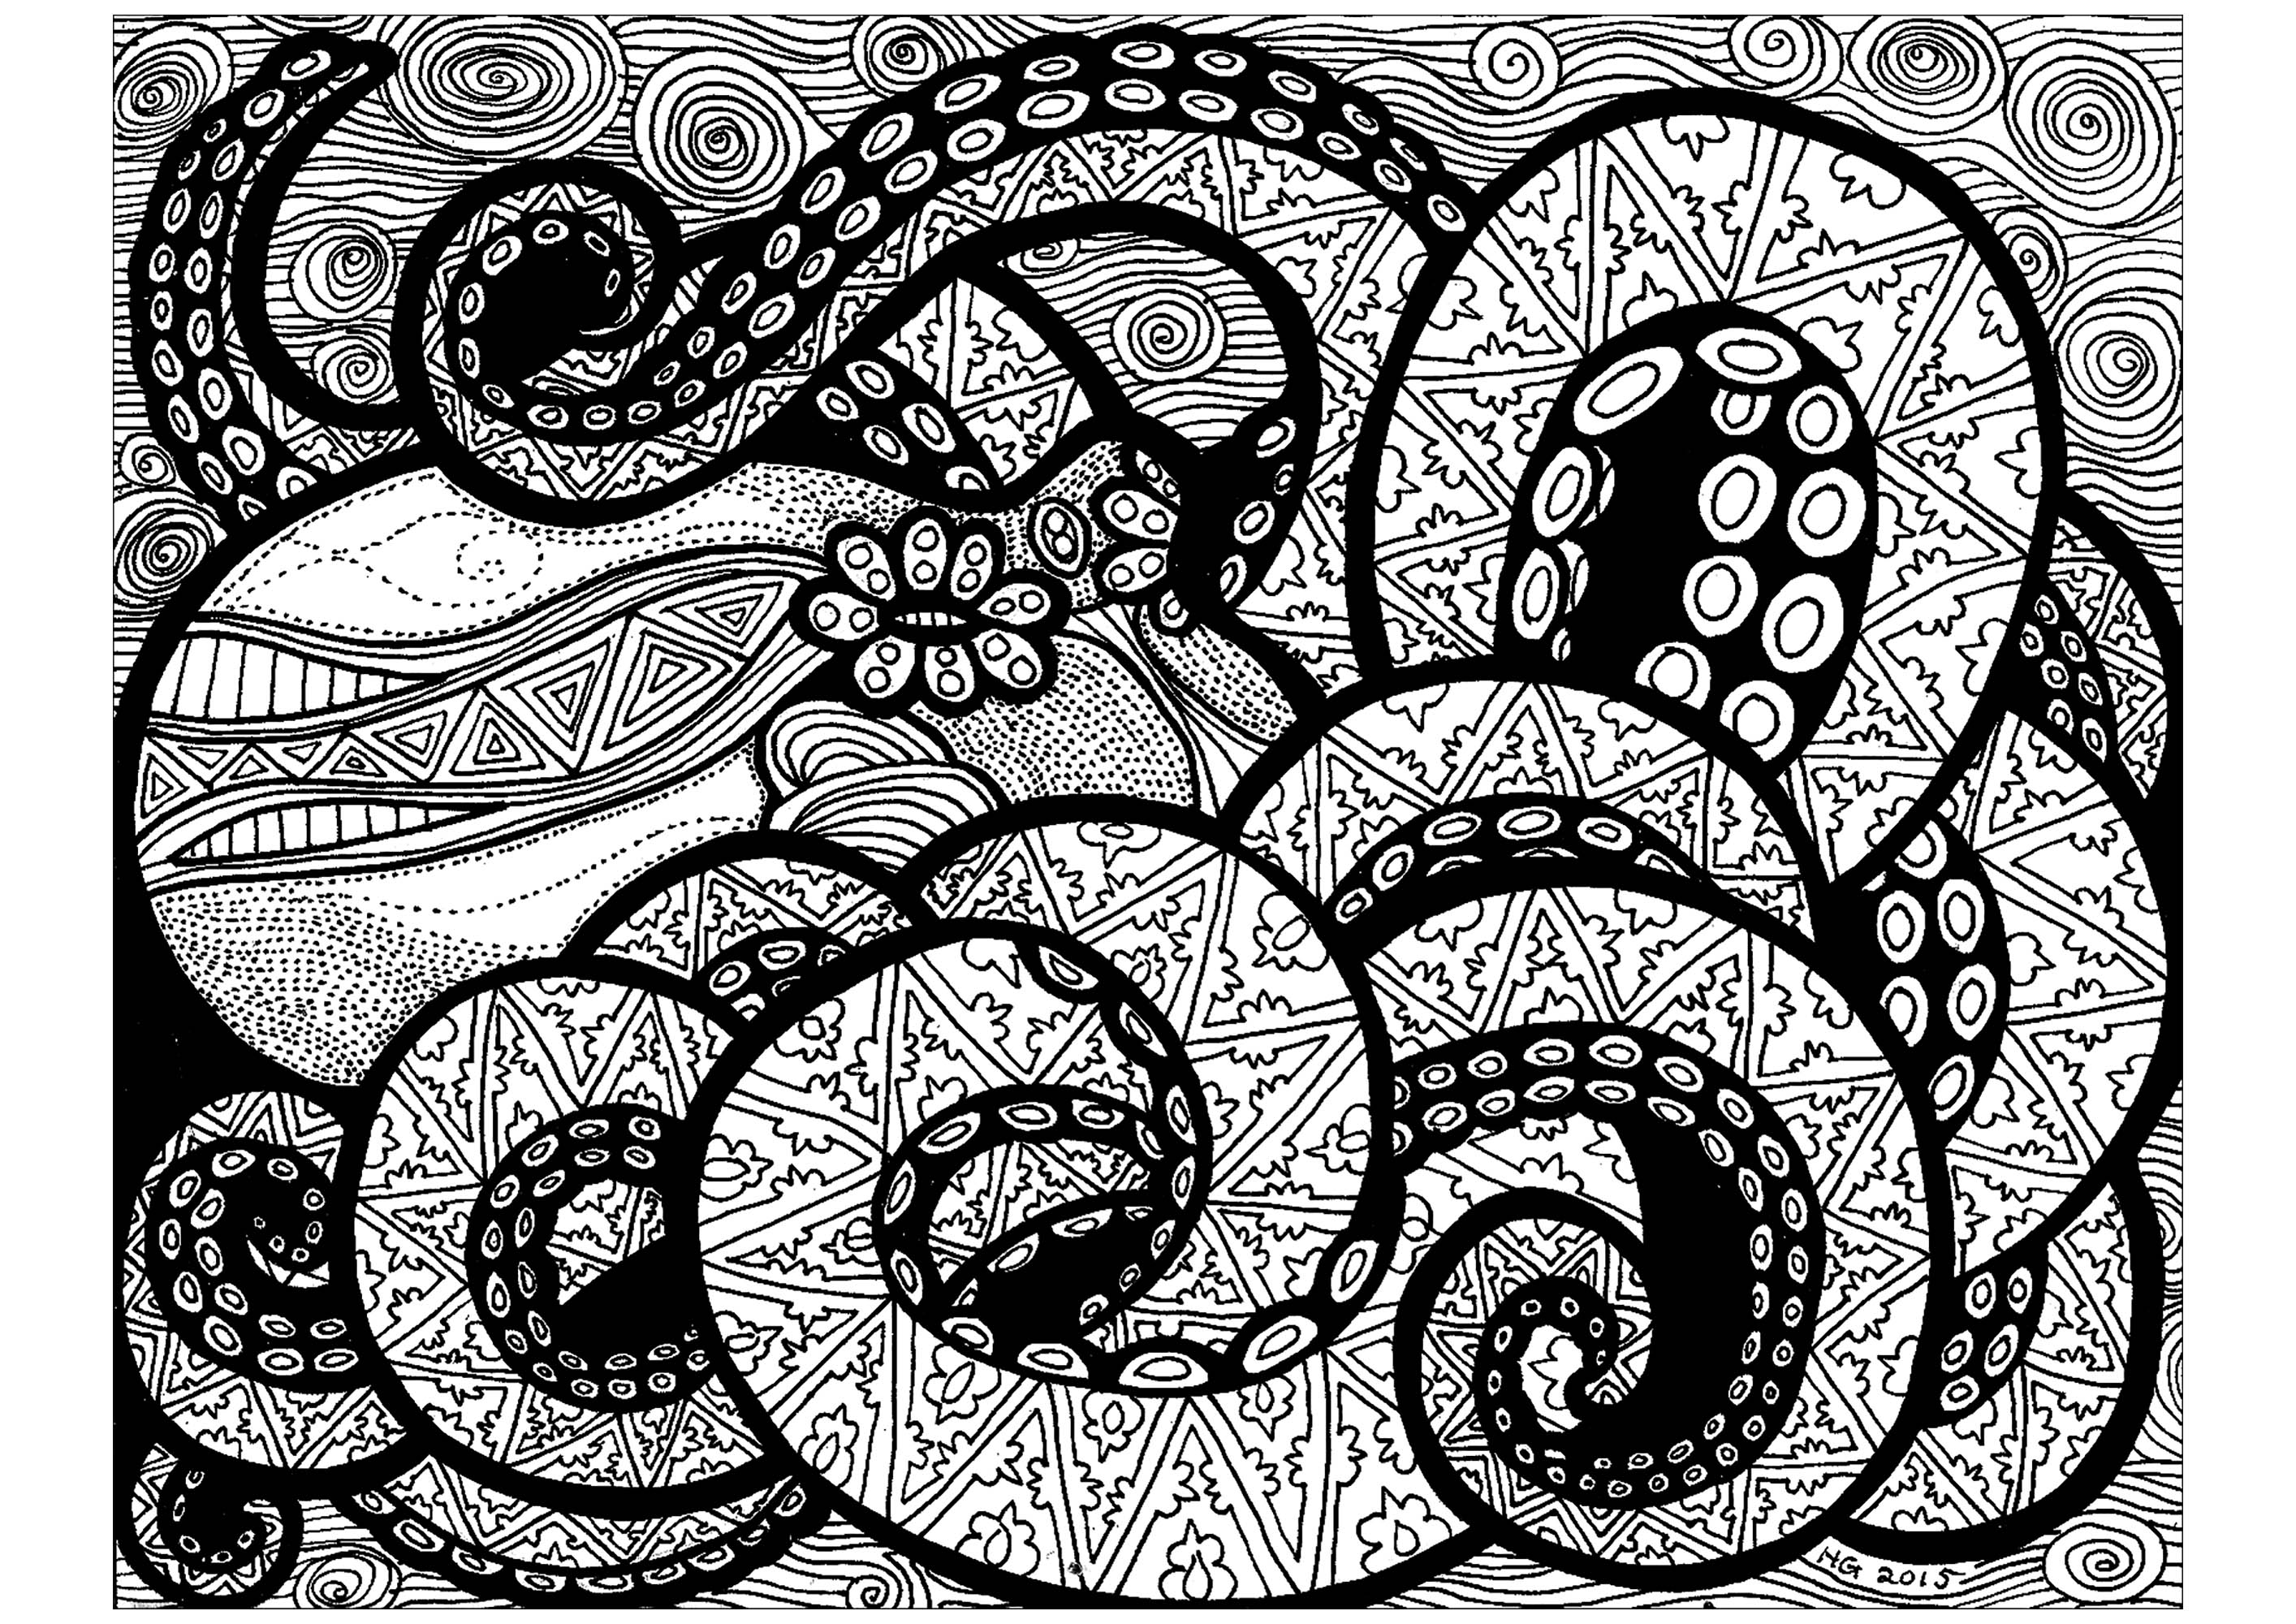 mandala octopus coloring page lines of the octopus zentangle adult coloring pages page mandala octopus coloring